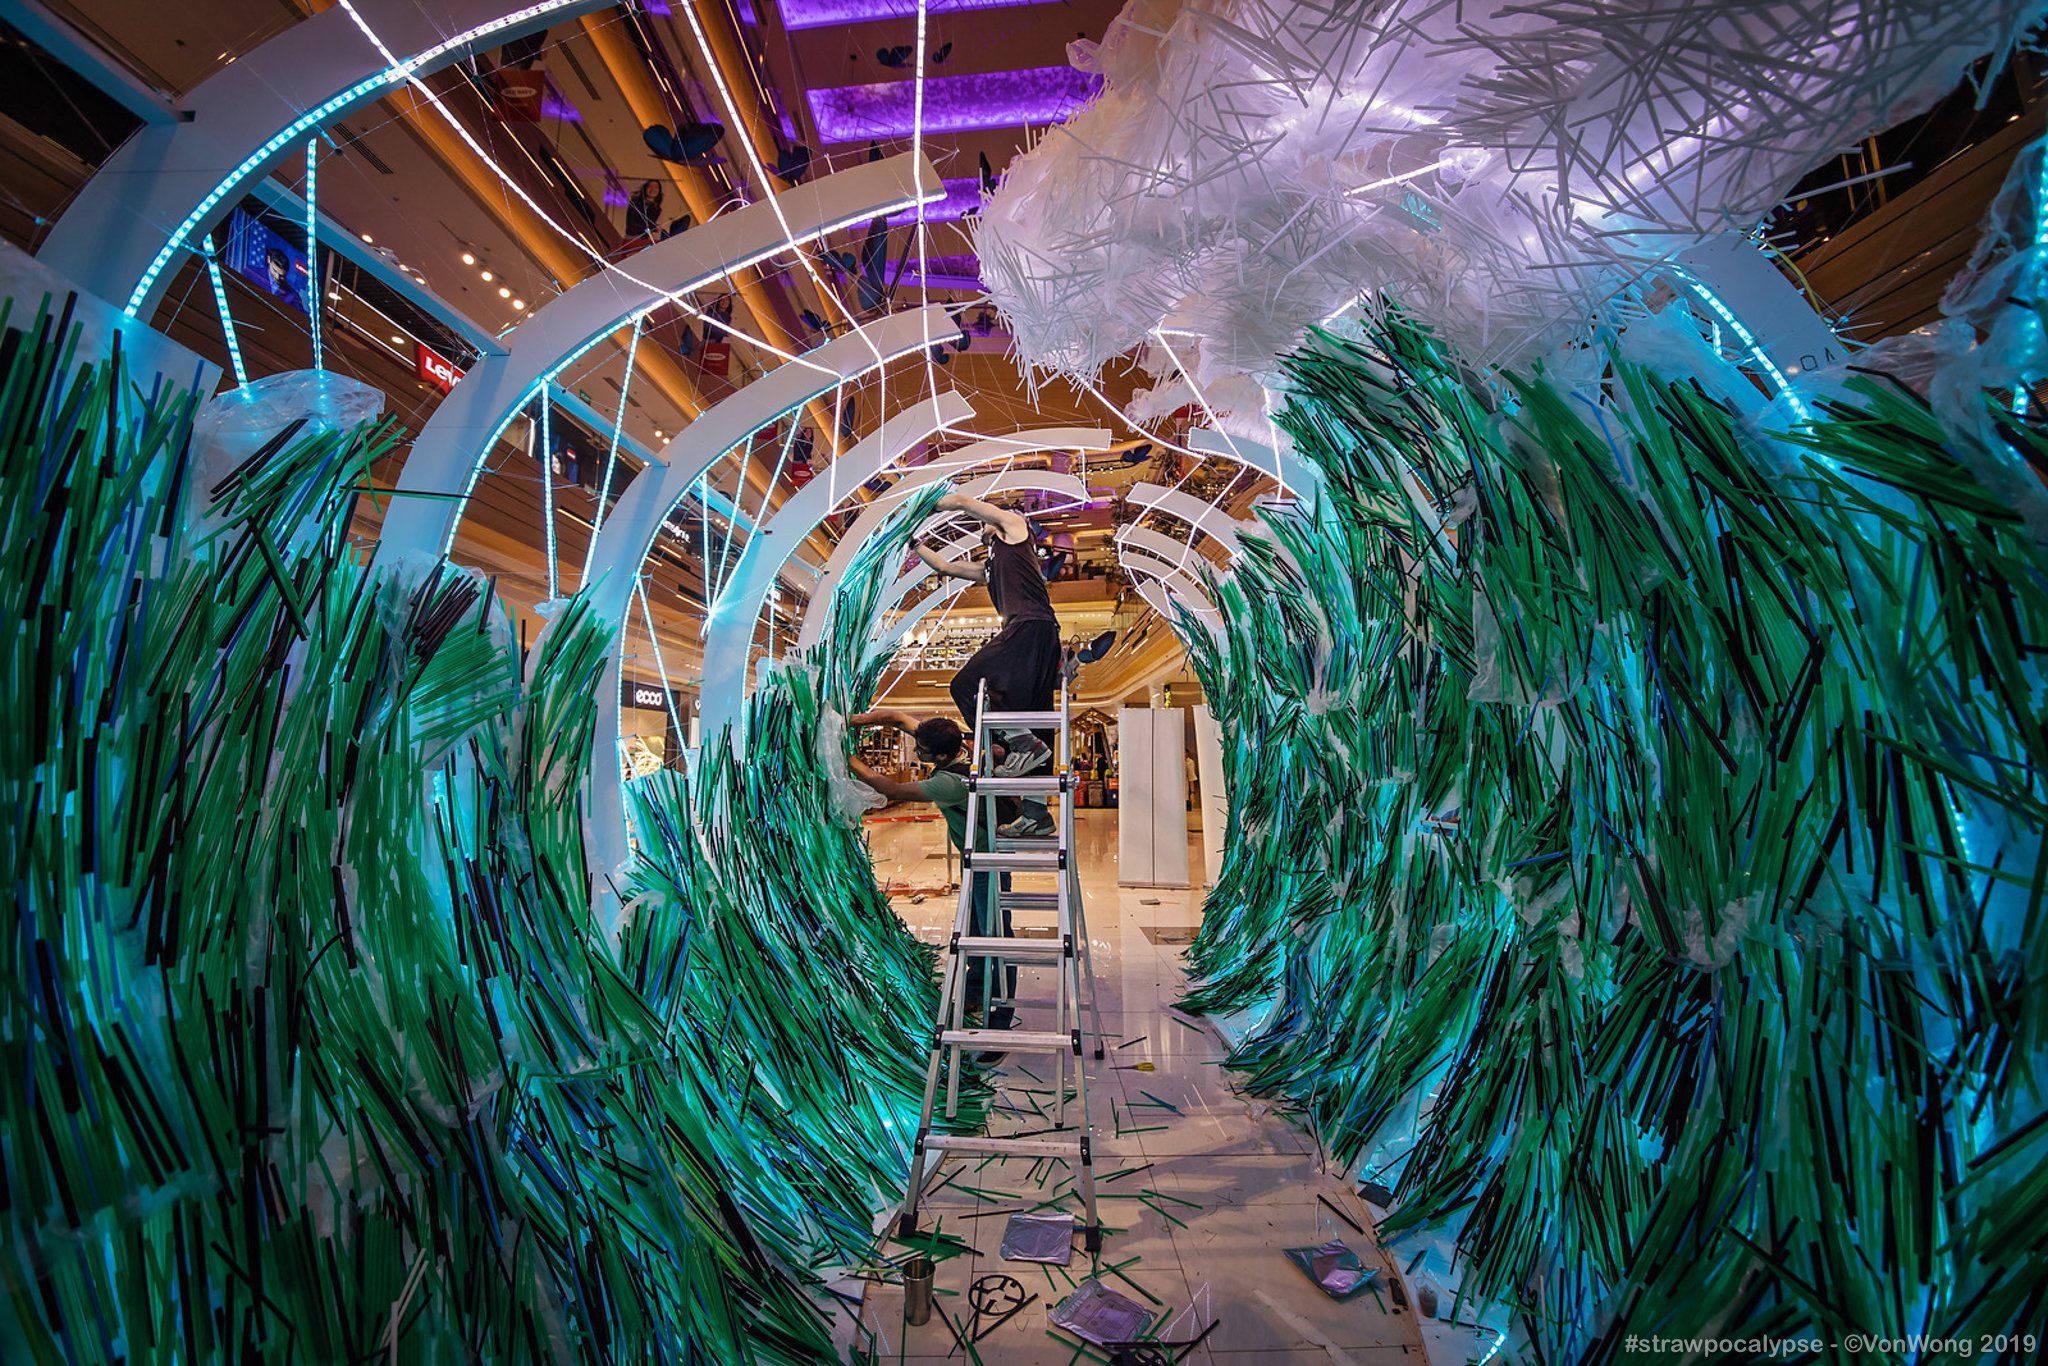 This Artist Turned Thousands of Plastic Straws Into Stunning Ocean Waves